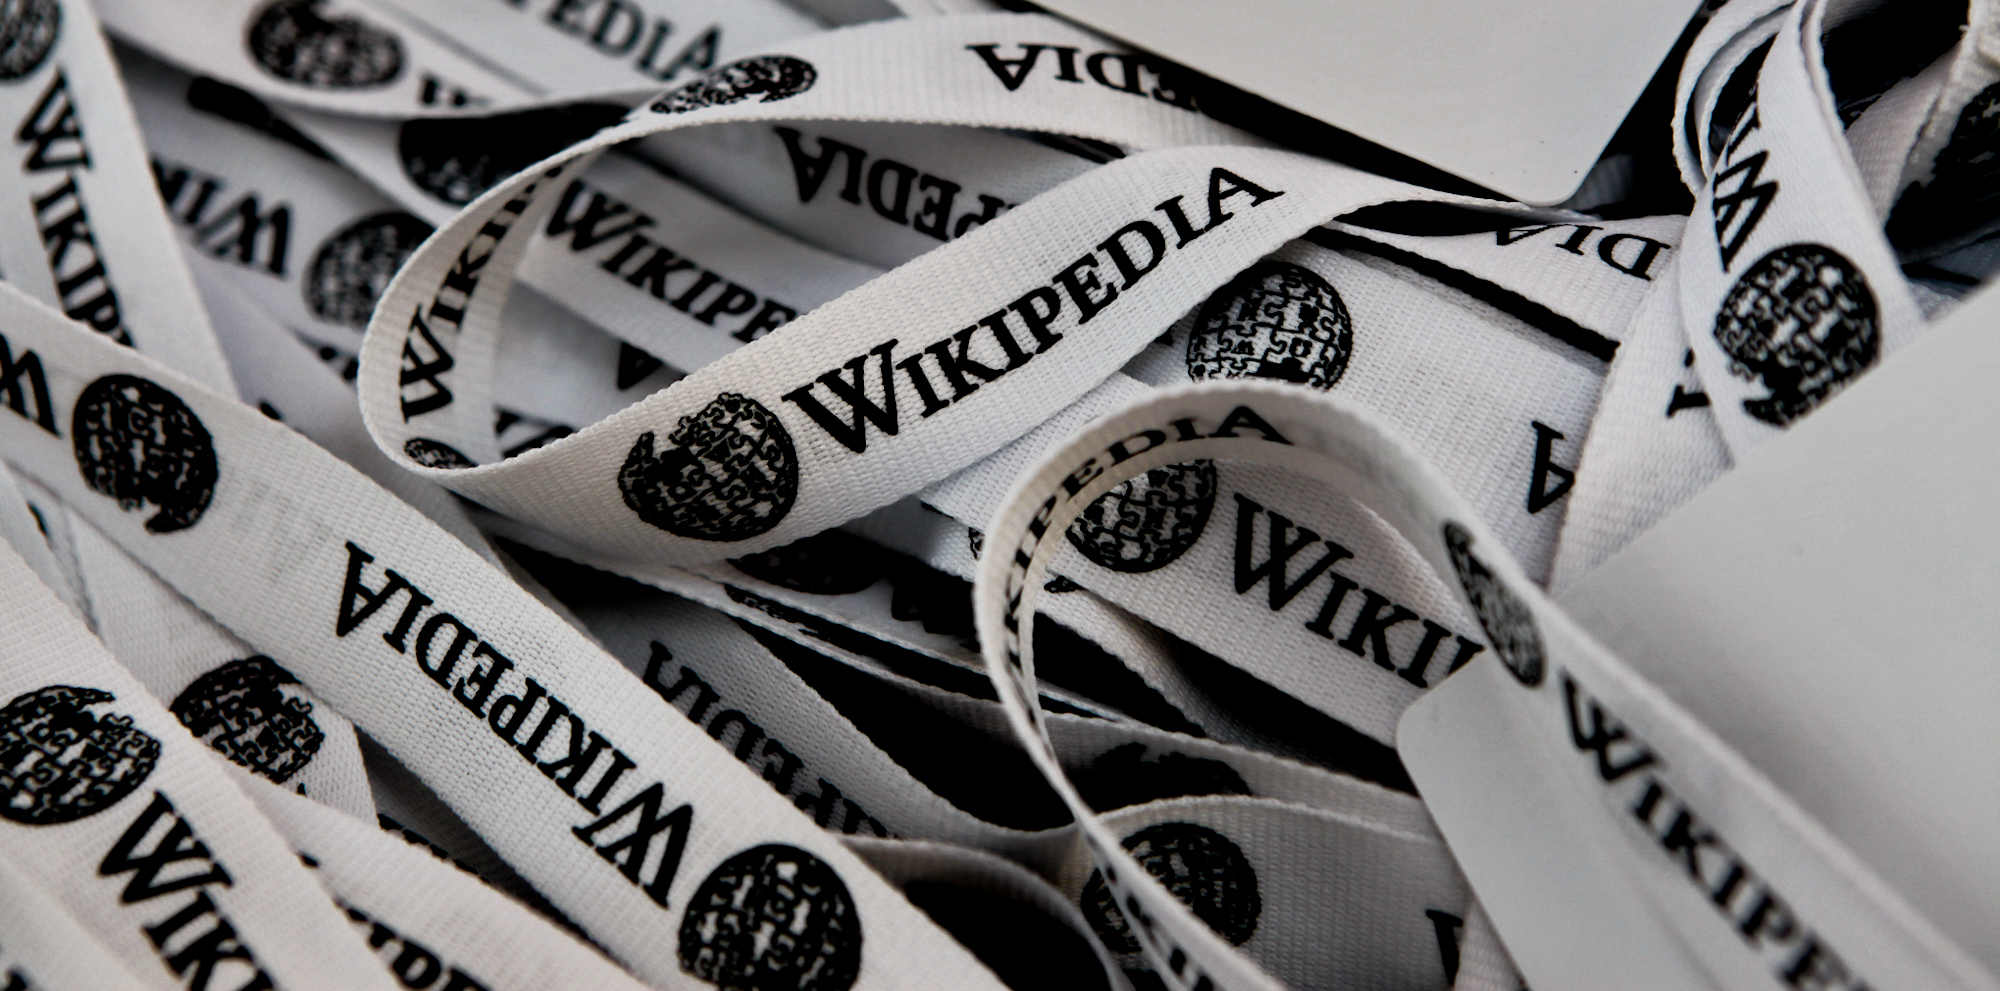 Phillip Cross: The Mystery Wikipedia Editor Targeting Anti-War Sites